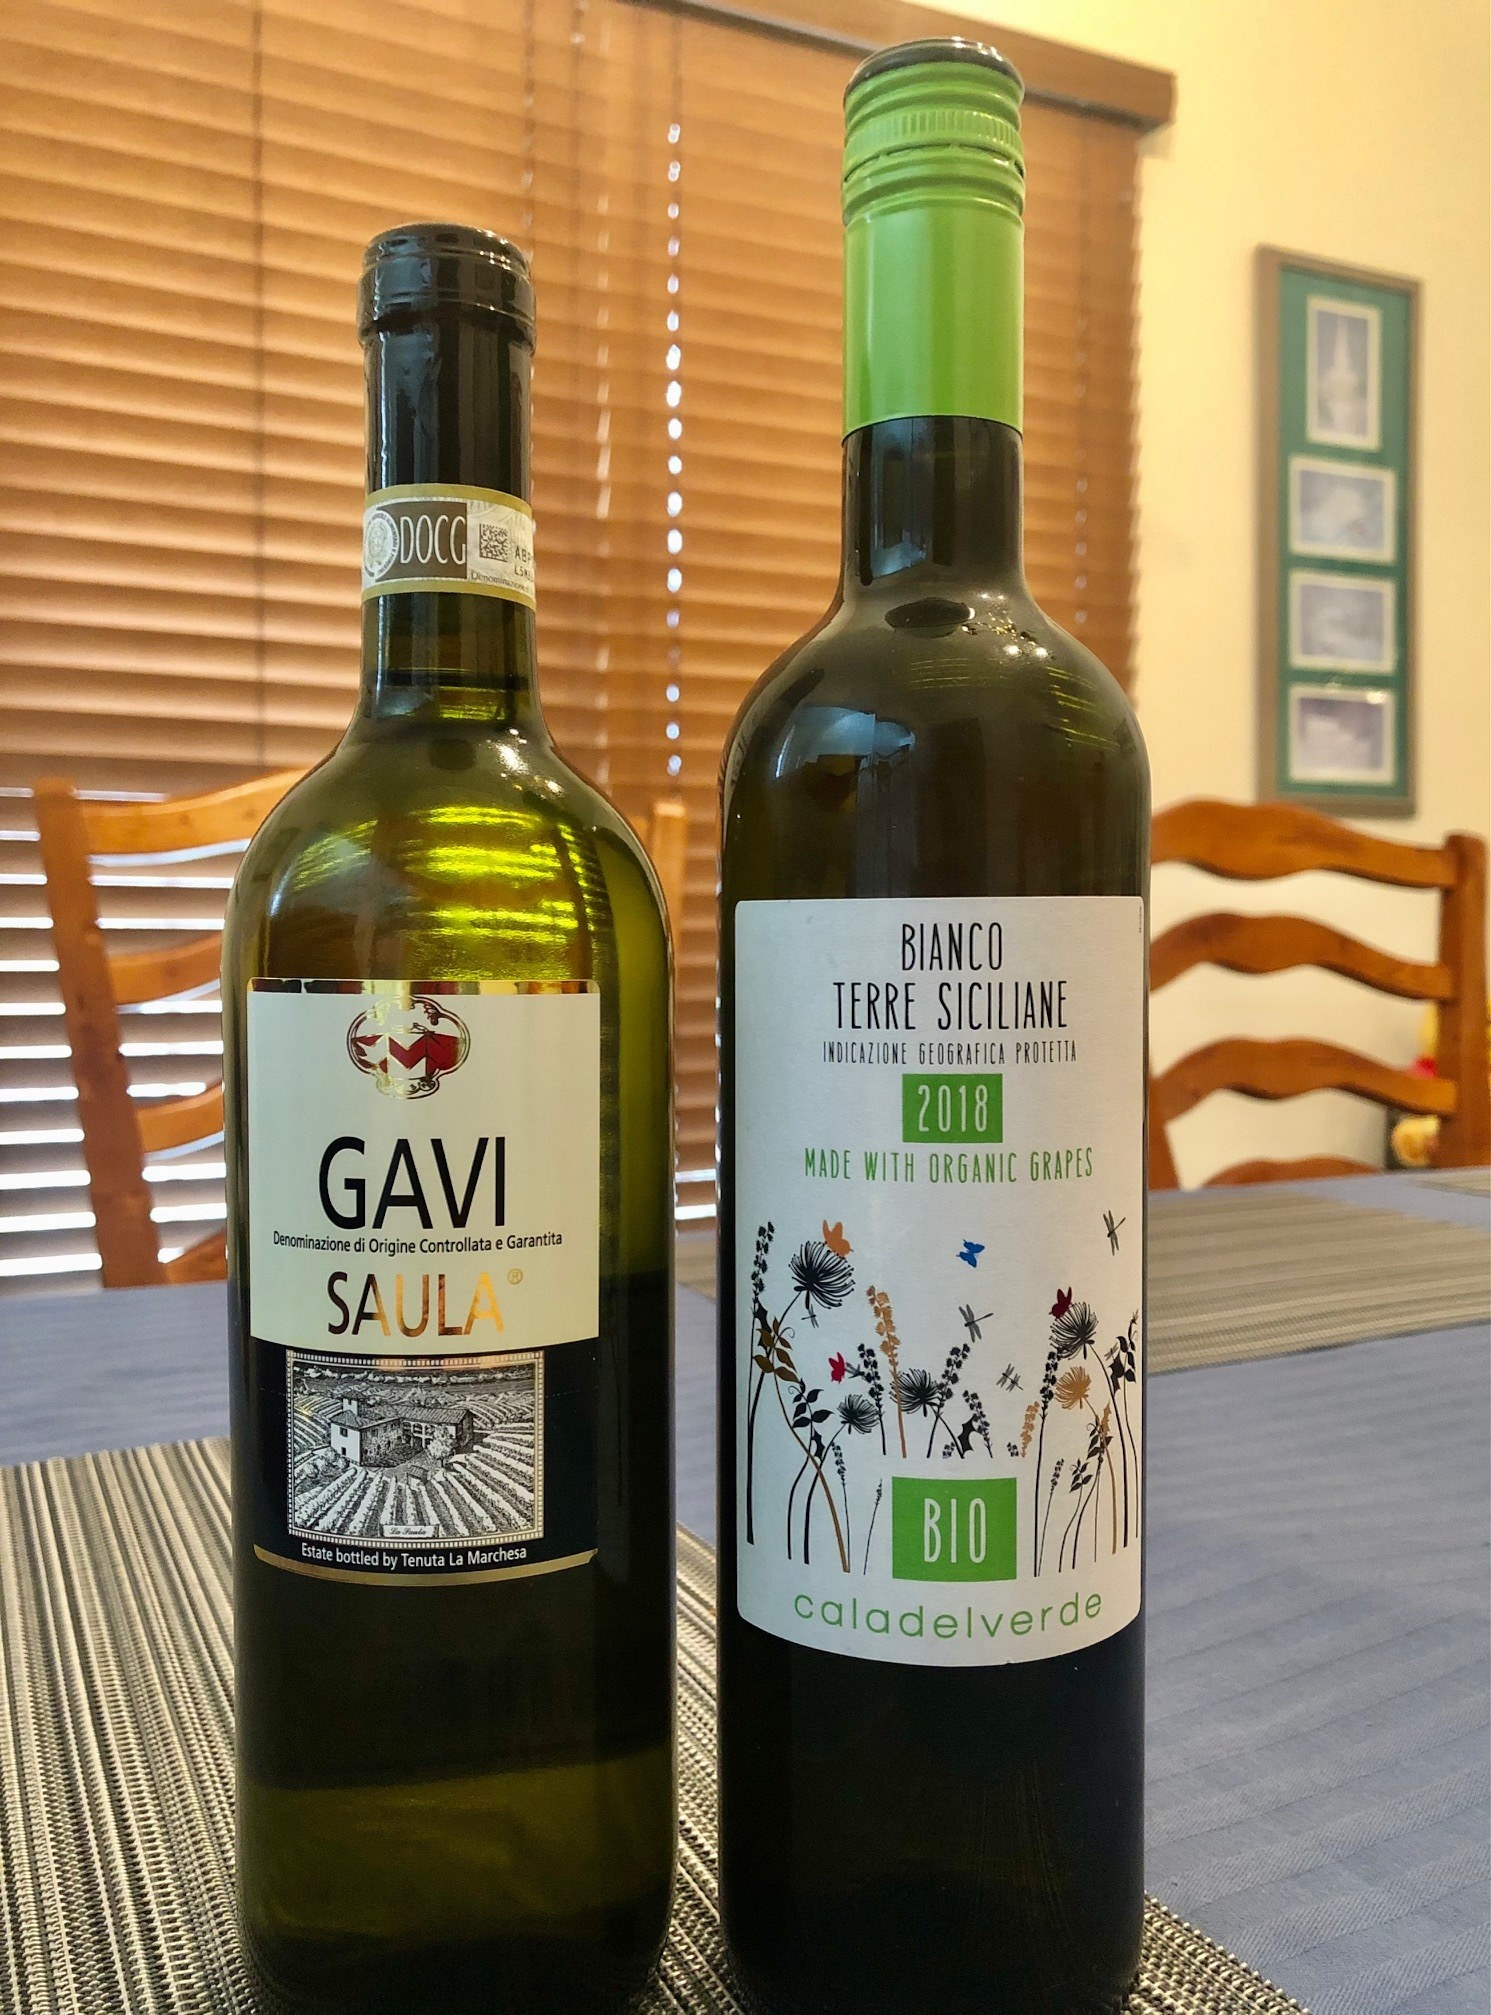 Two bottles of Italian white wine